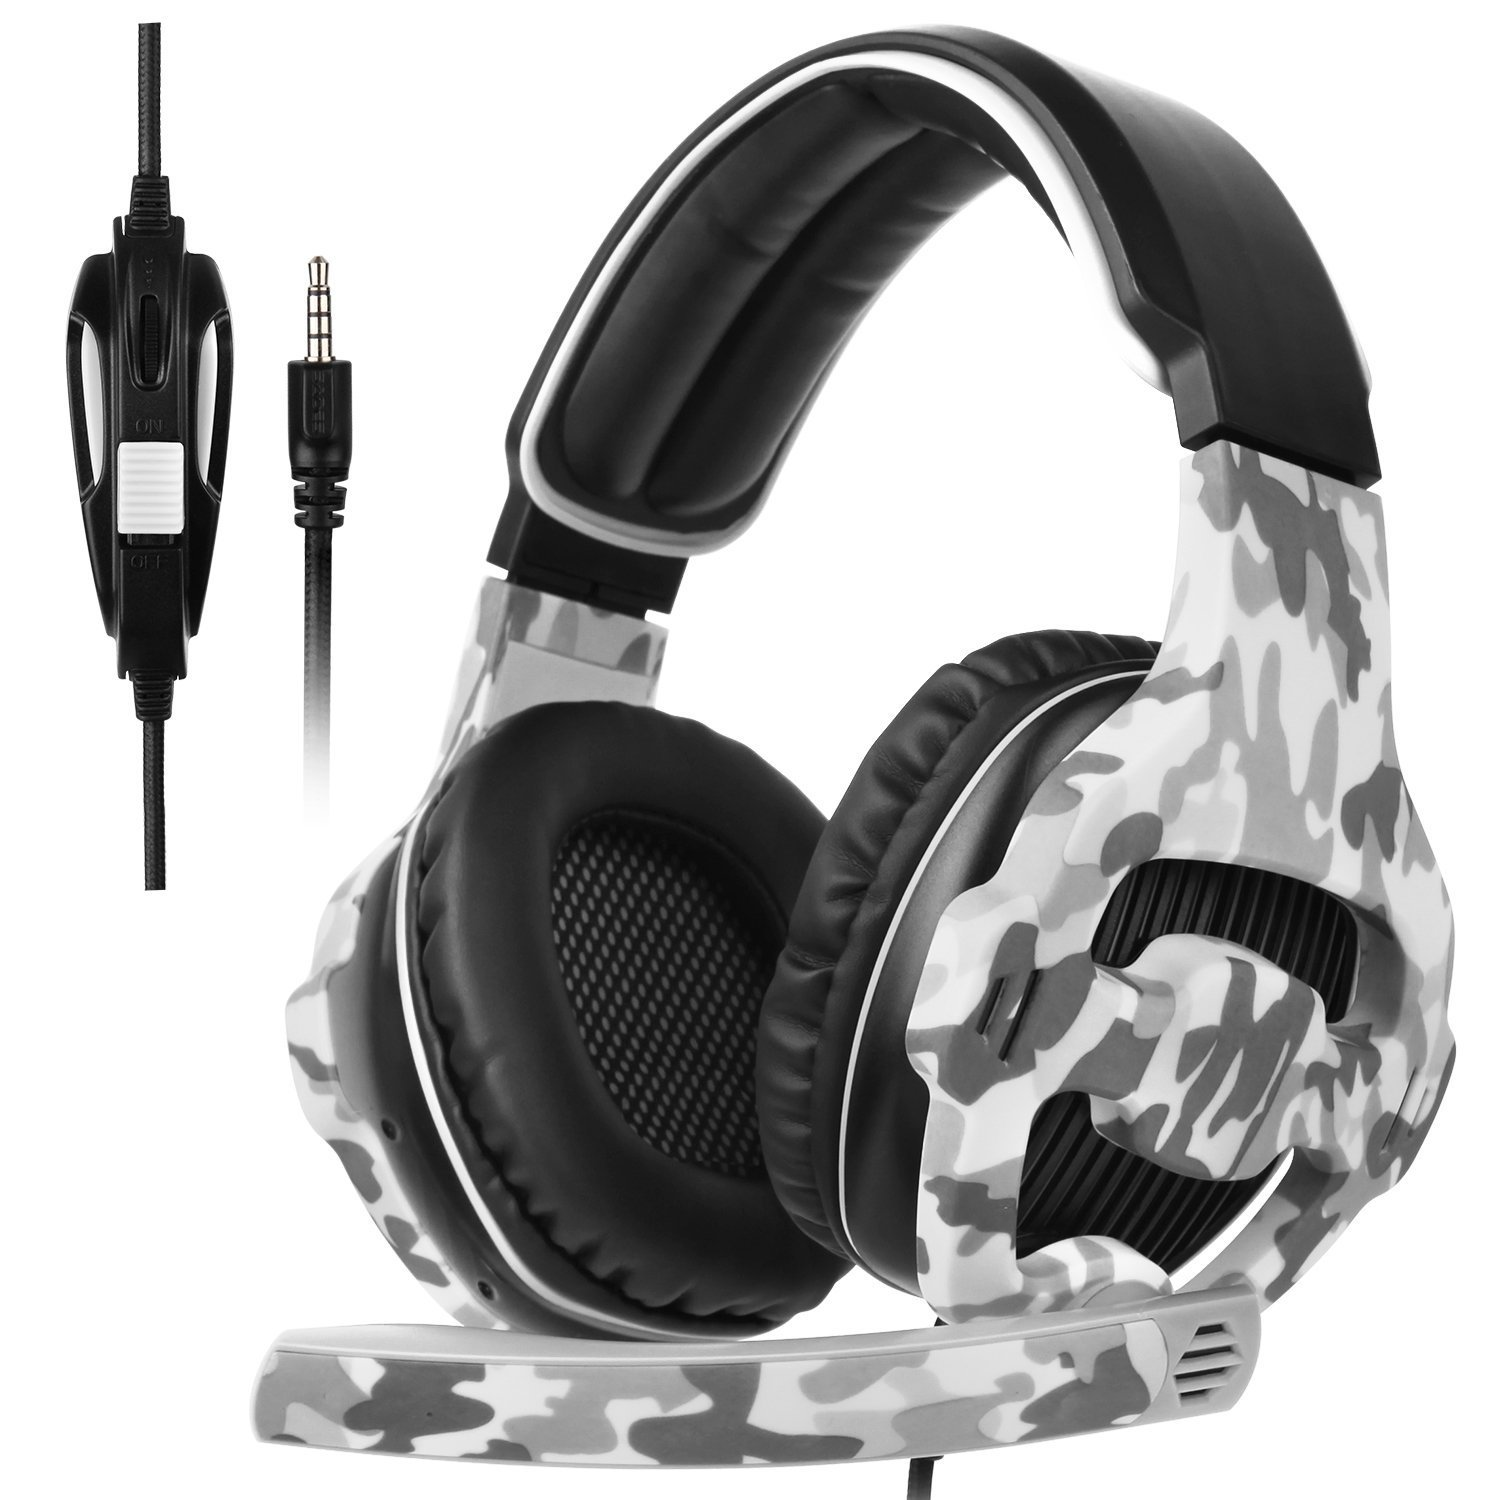 SADES SA810Plus Over-Ear Stereo Gaming Headset Headband Headphones with HiFi Mic Control-Remote Noise-Reduction for PC Computers/Notebooks/New Xbox One/PS4(Camouflage)